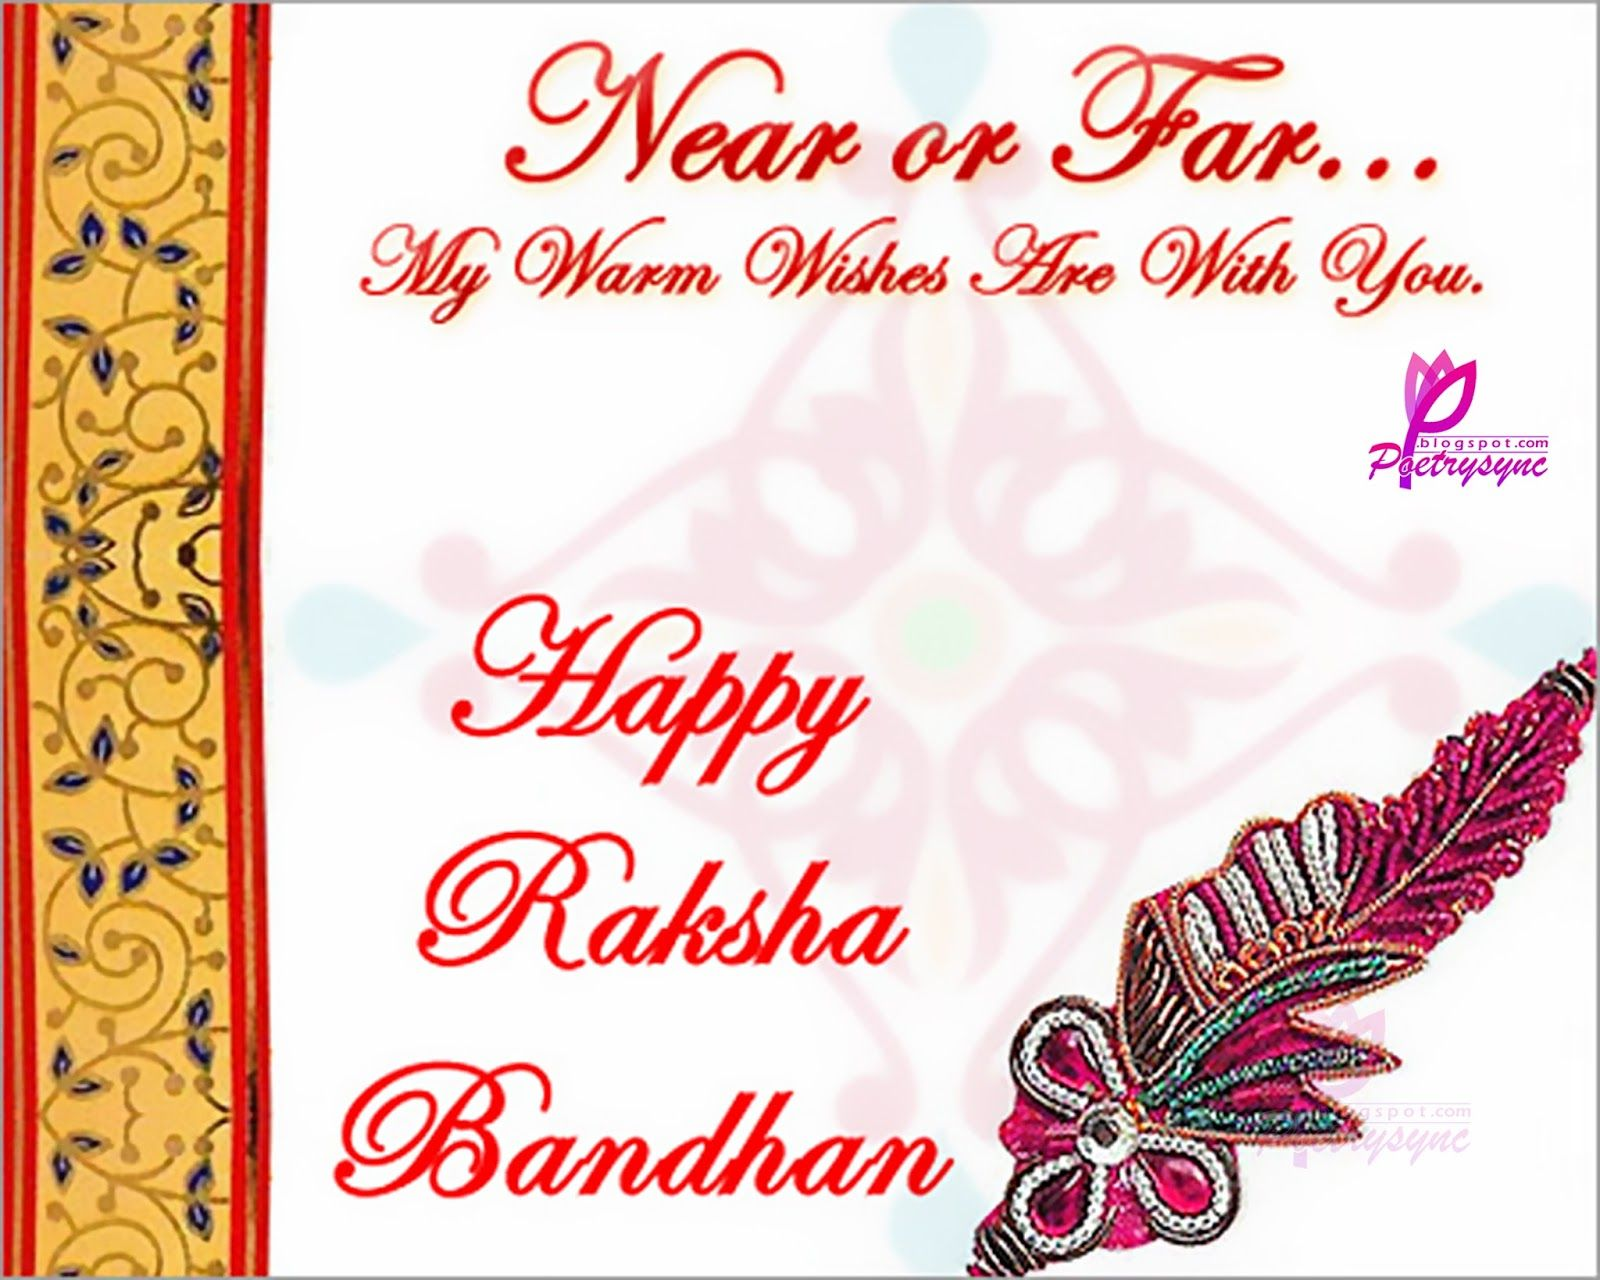 best ideas about poem on raksha bandhan raksha 17 best ideas about poem on raksha bandhan raksha bandhan poems the metamorphosis summary and rakhi photo